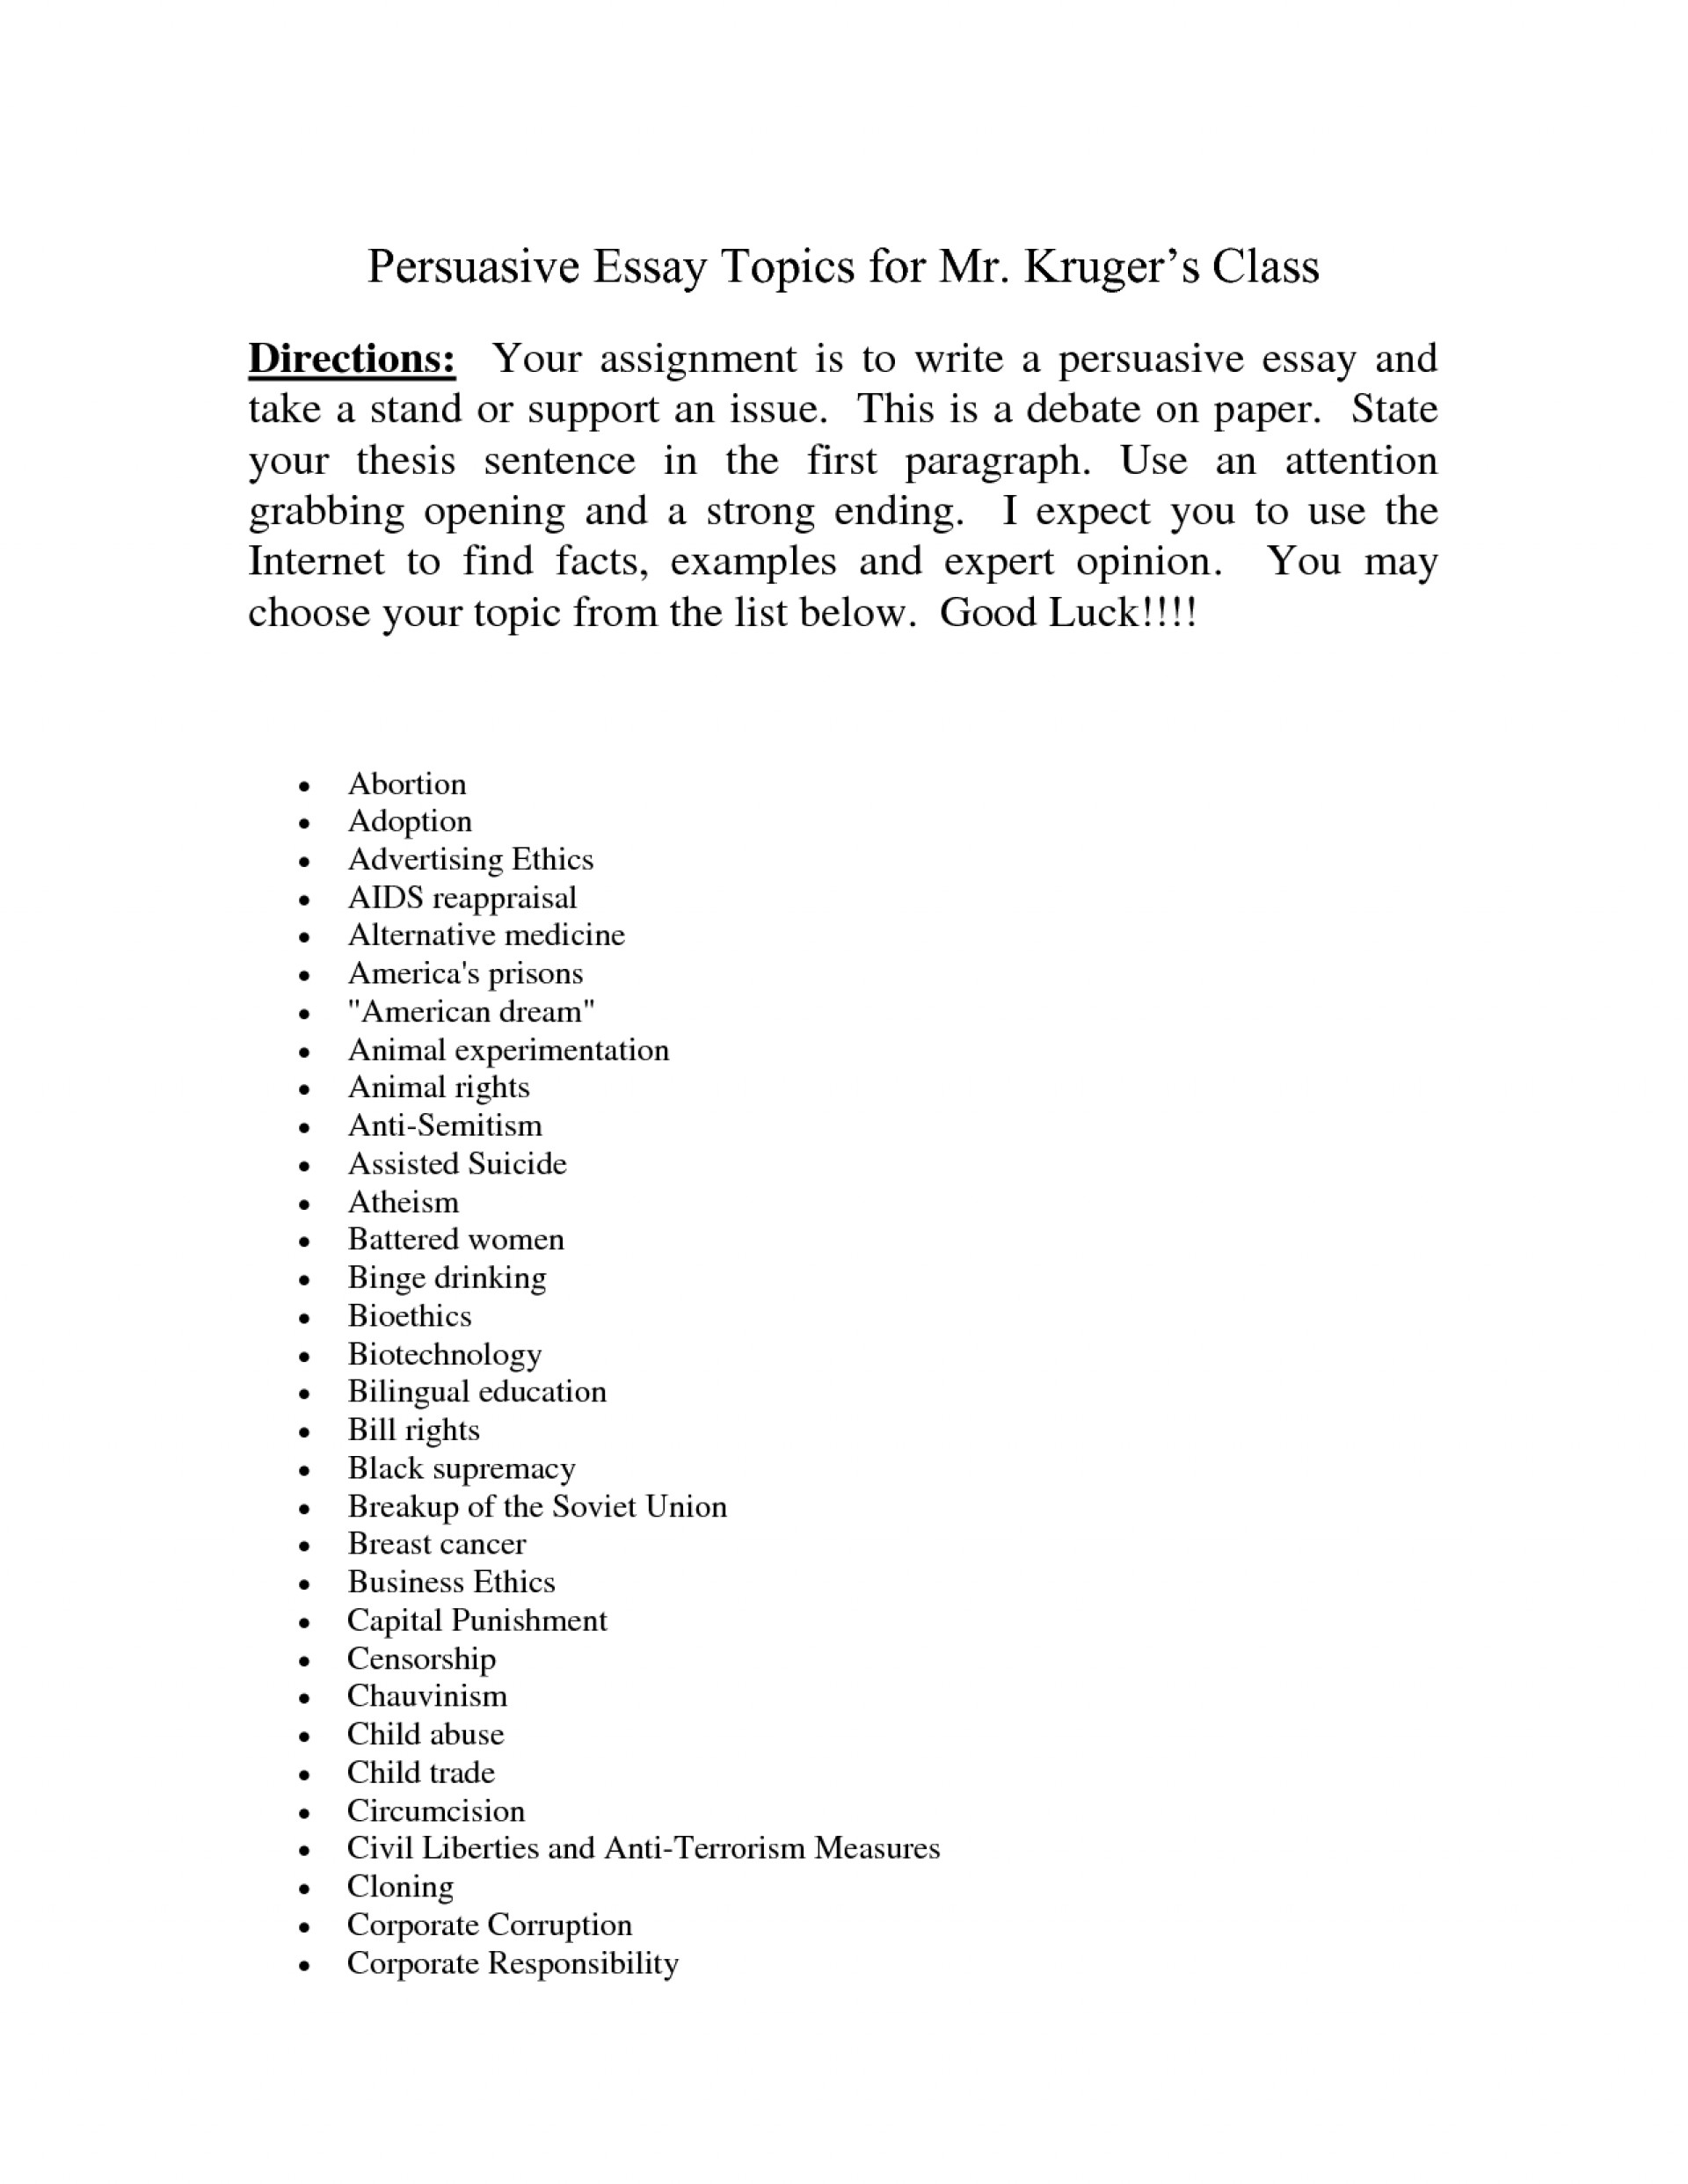 002 Essay Topic Ideas Example Persuasive Topics Outline Easy For High School Students College Essays Applicati 7th Graders Primary Middle Elementary Outstanding University Narrative 6th 1920